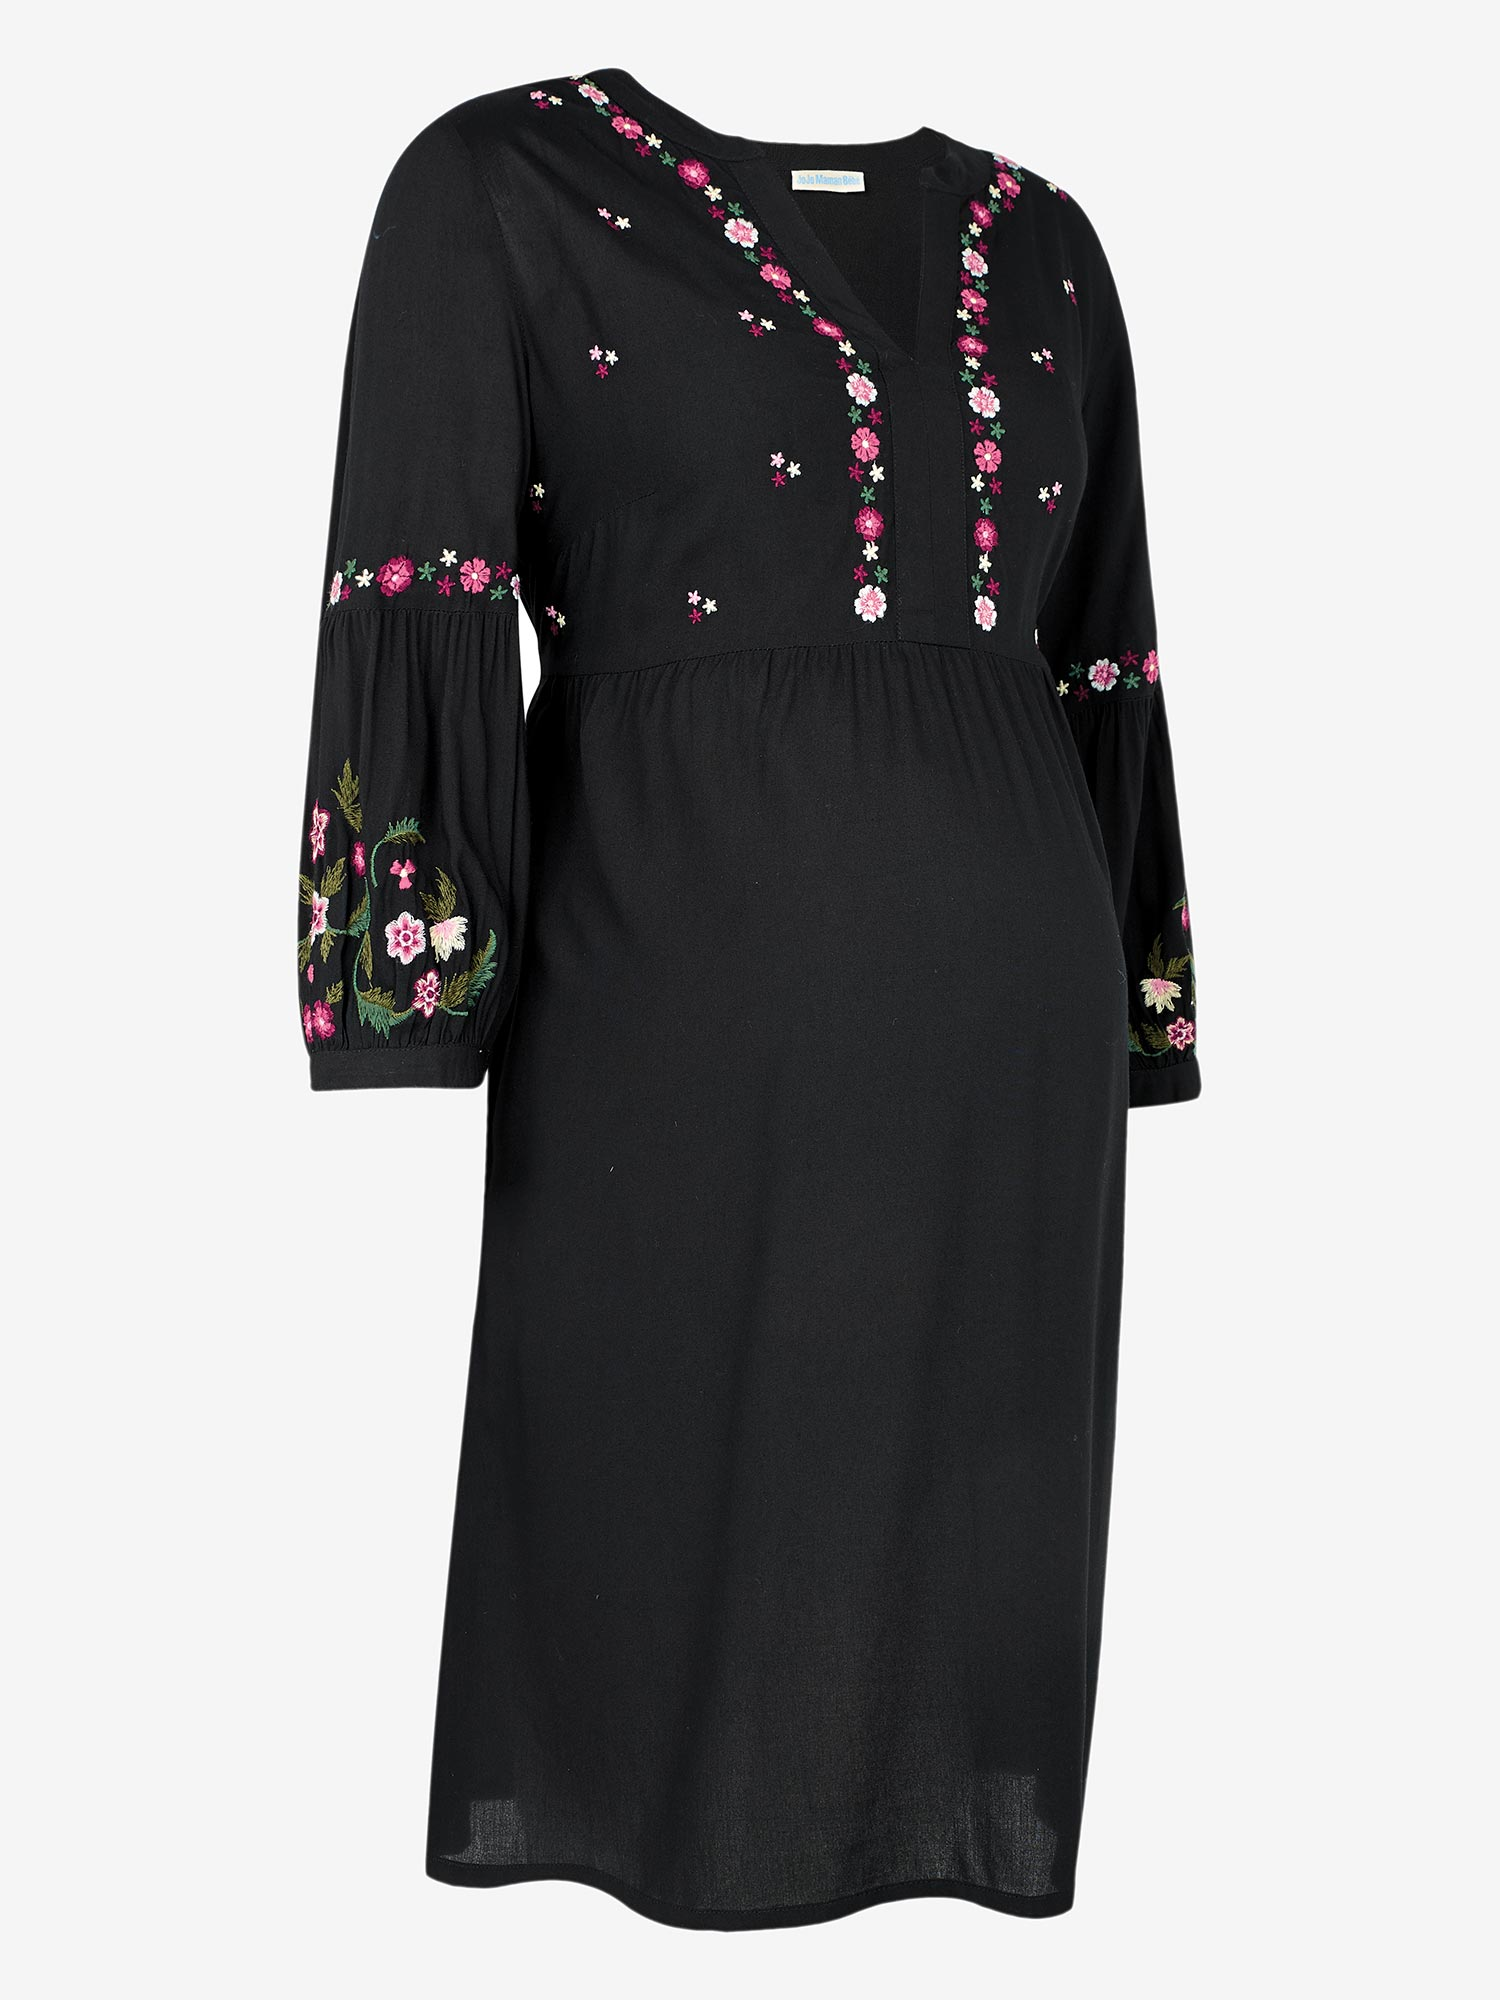 Black Embroidered Maternity Dress